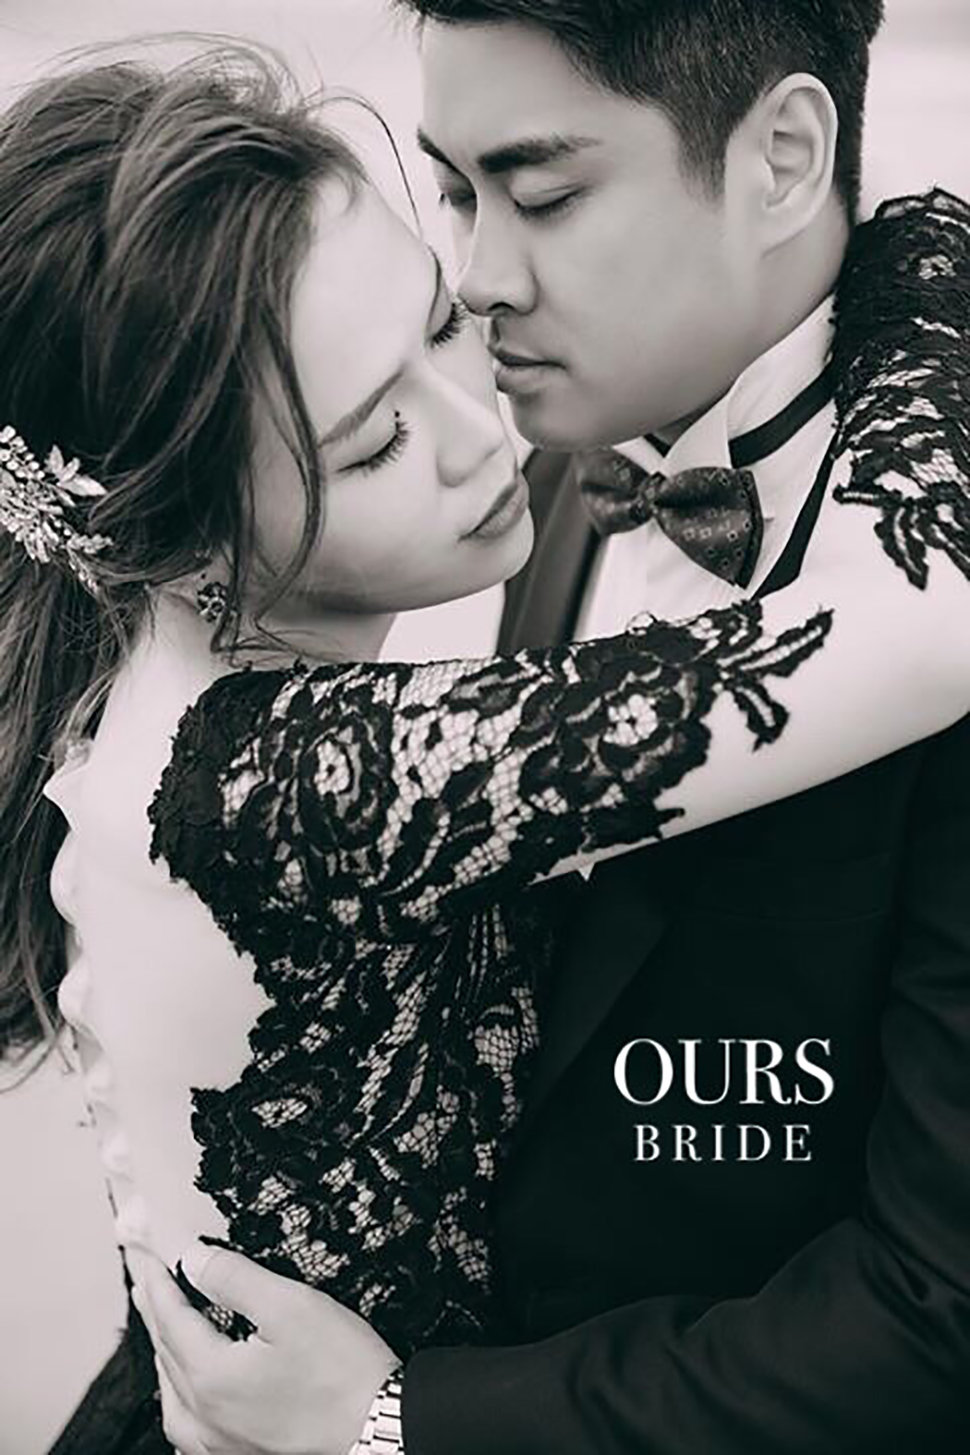 12 - OURS BRIDE《結婚吧》